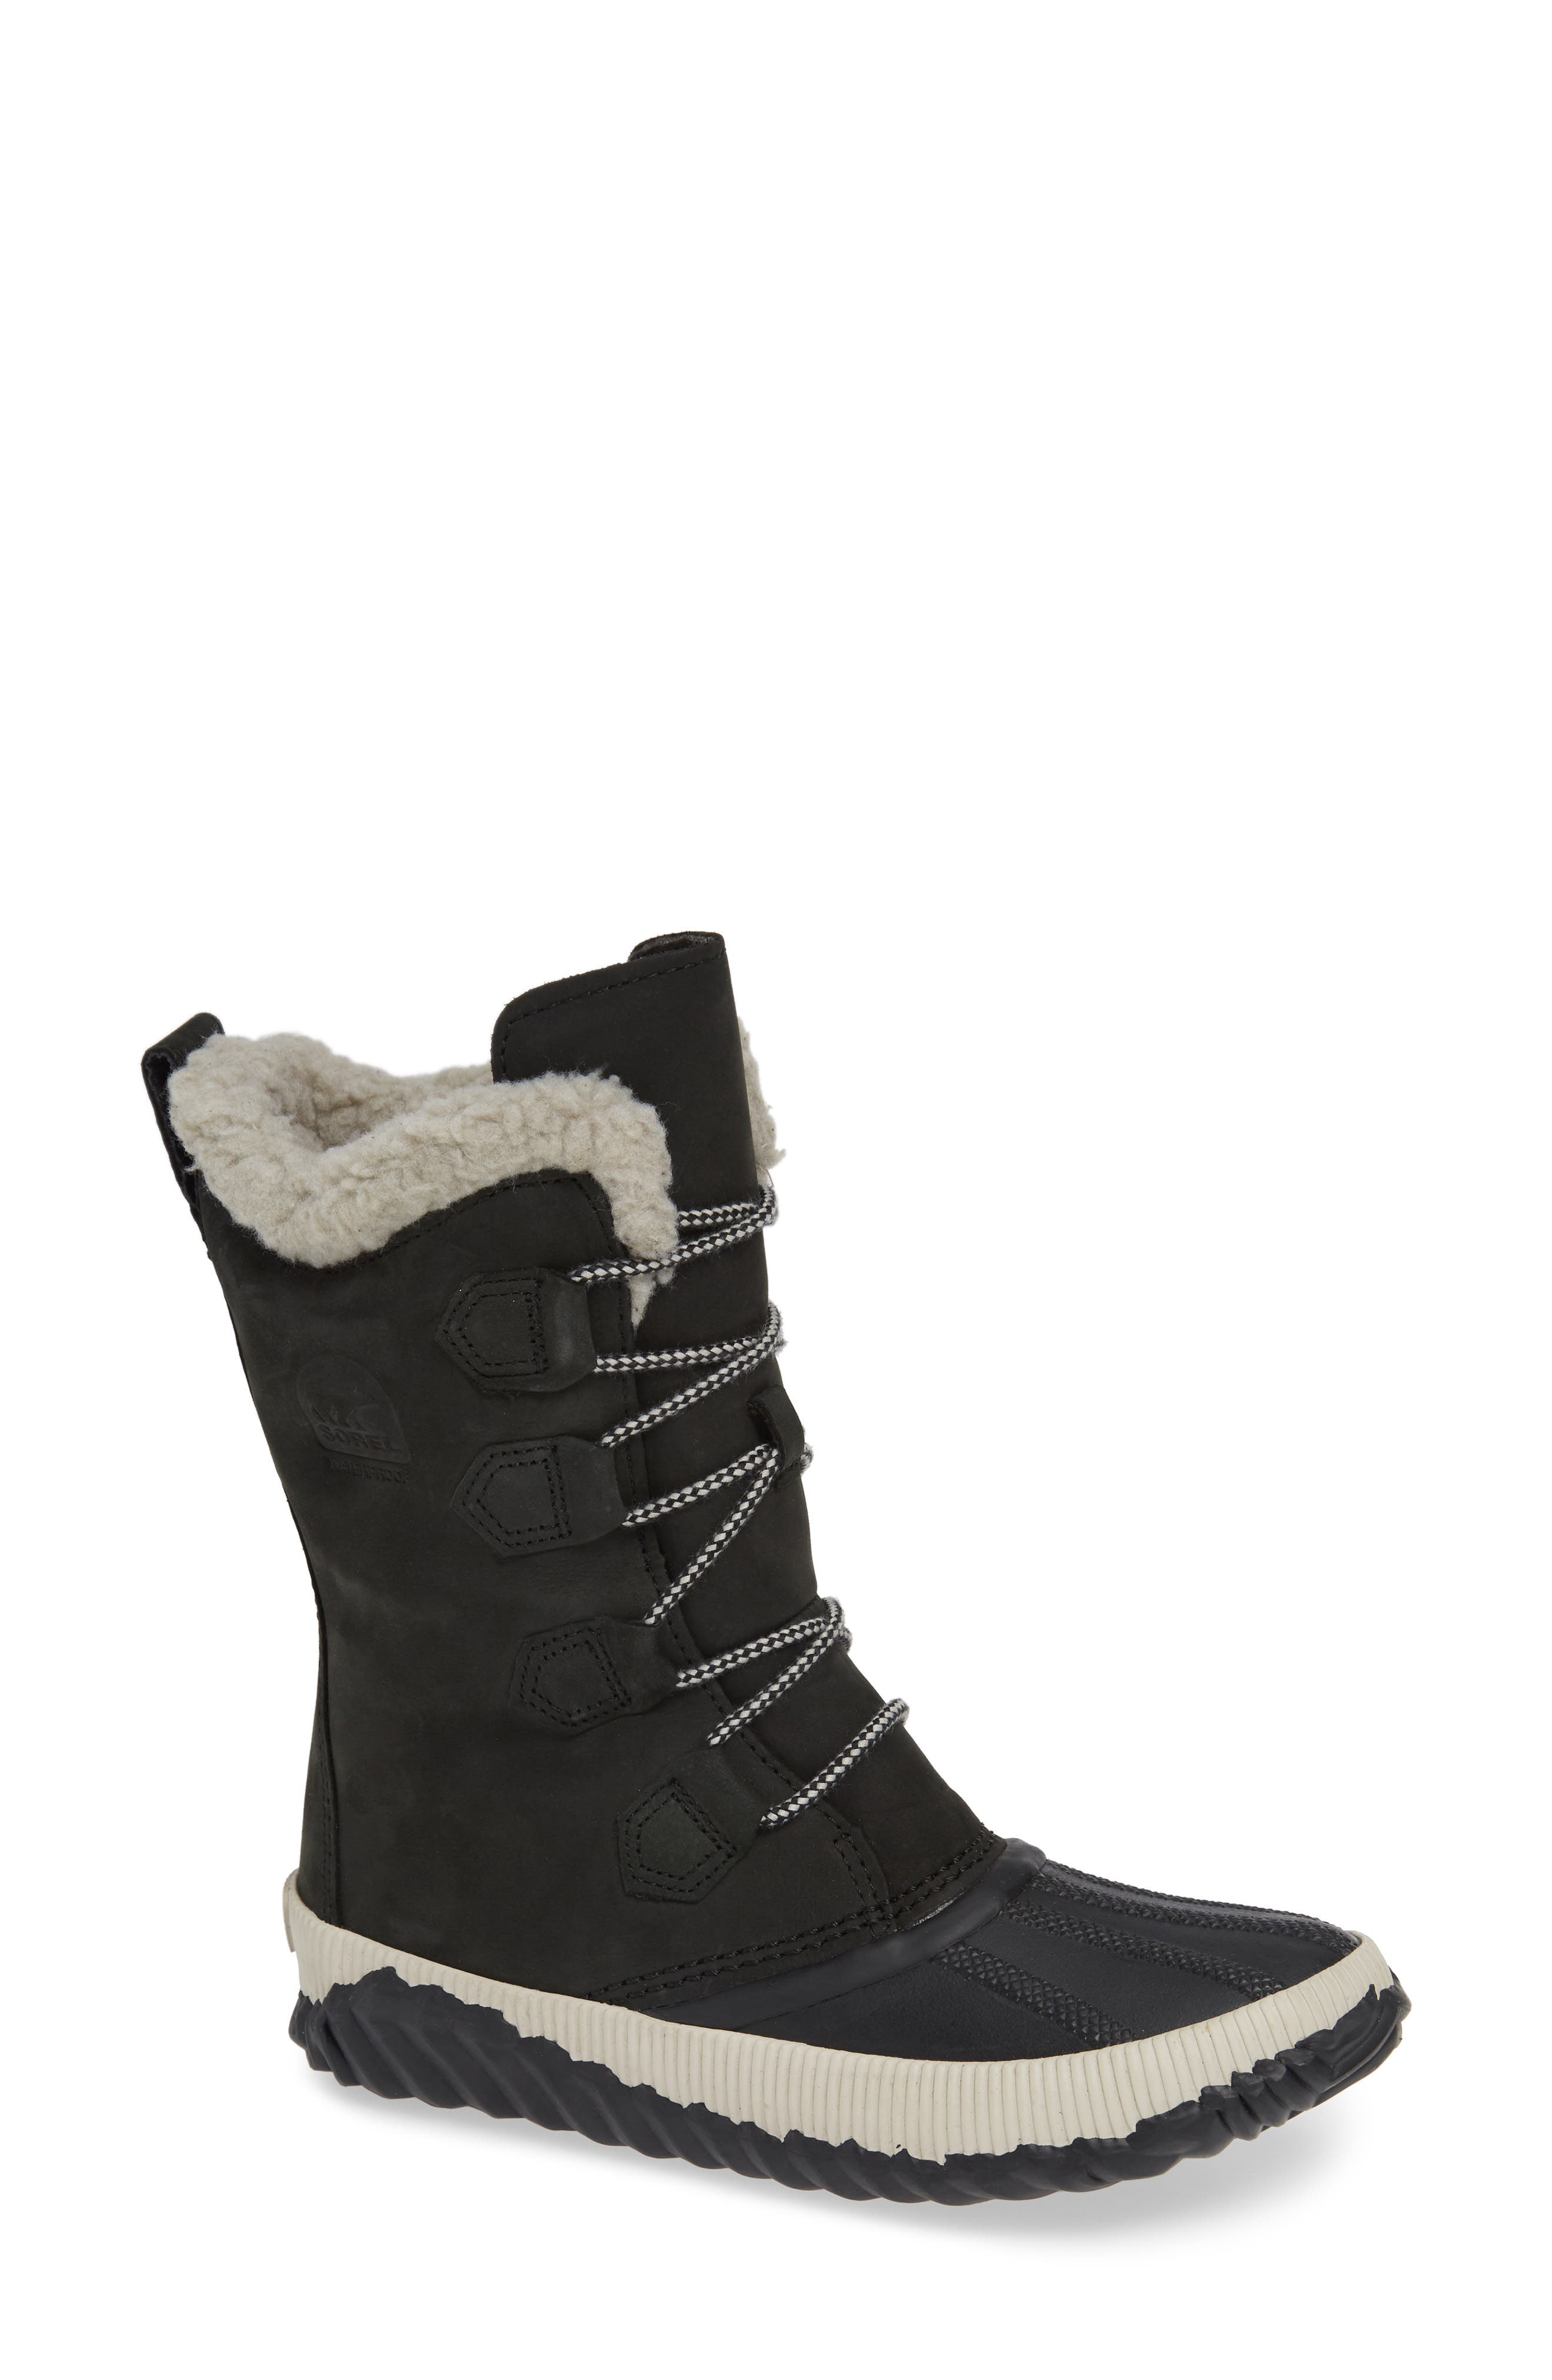 Sorel Out N About Plus Tall Waterproof Boot, Black